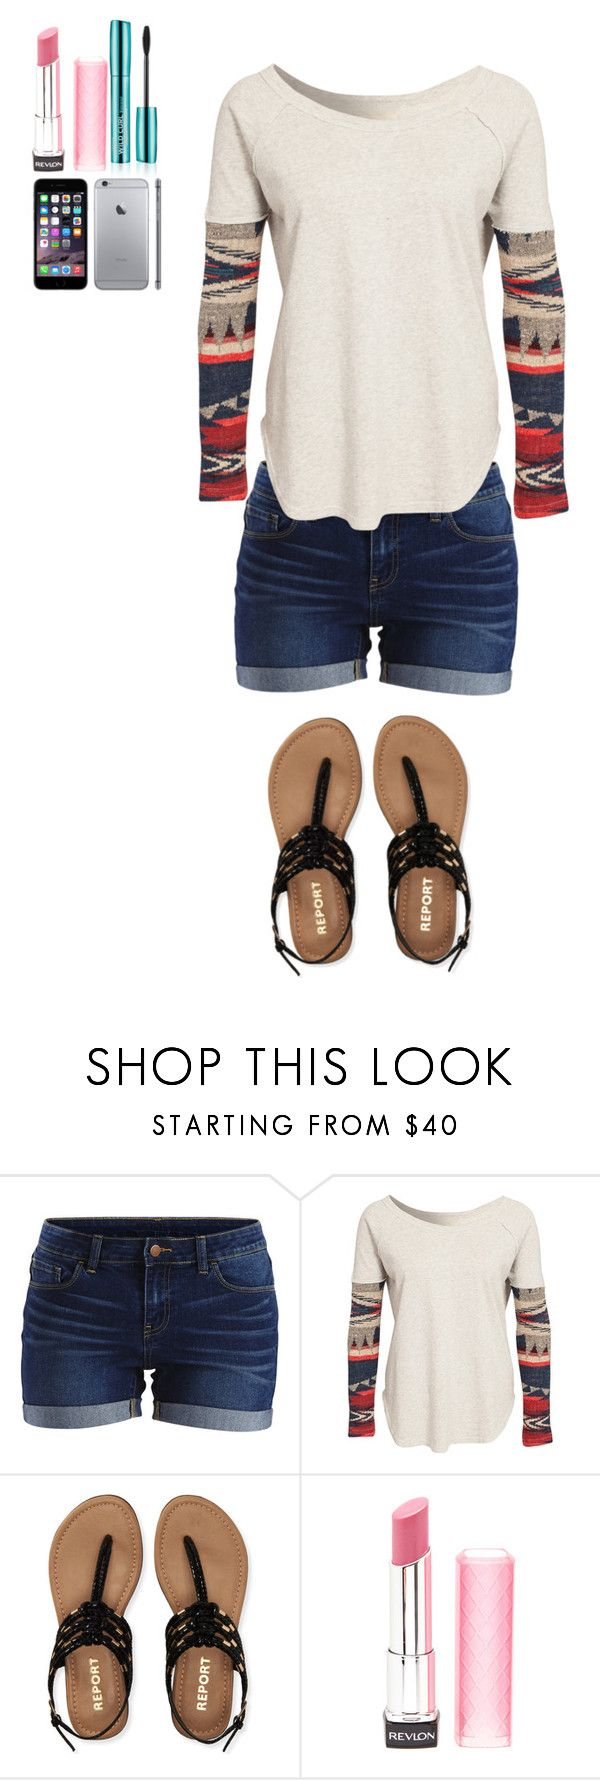 """""""Mall outfit"""" by paniceverywhere ❤ liked on Polyvore featuring Vila Milano, Denim & Supply by Ralph Lauren, Aéropostale and Revlon"""